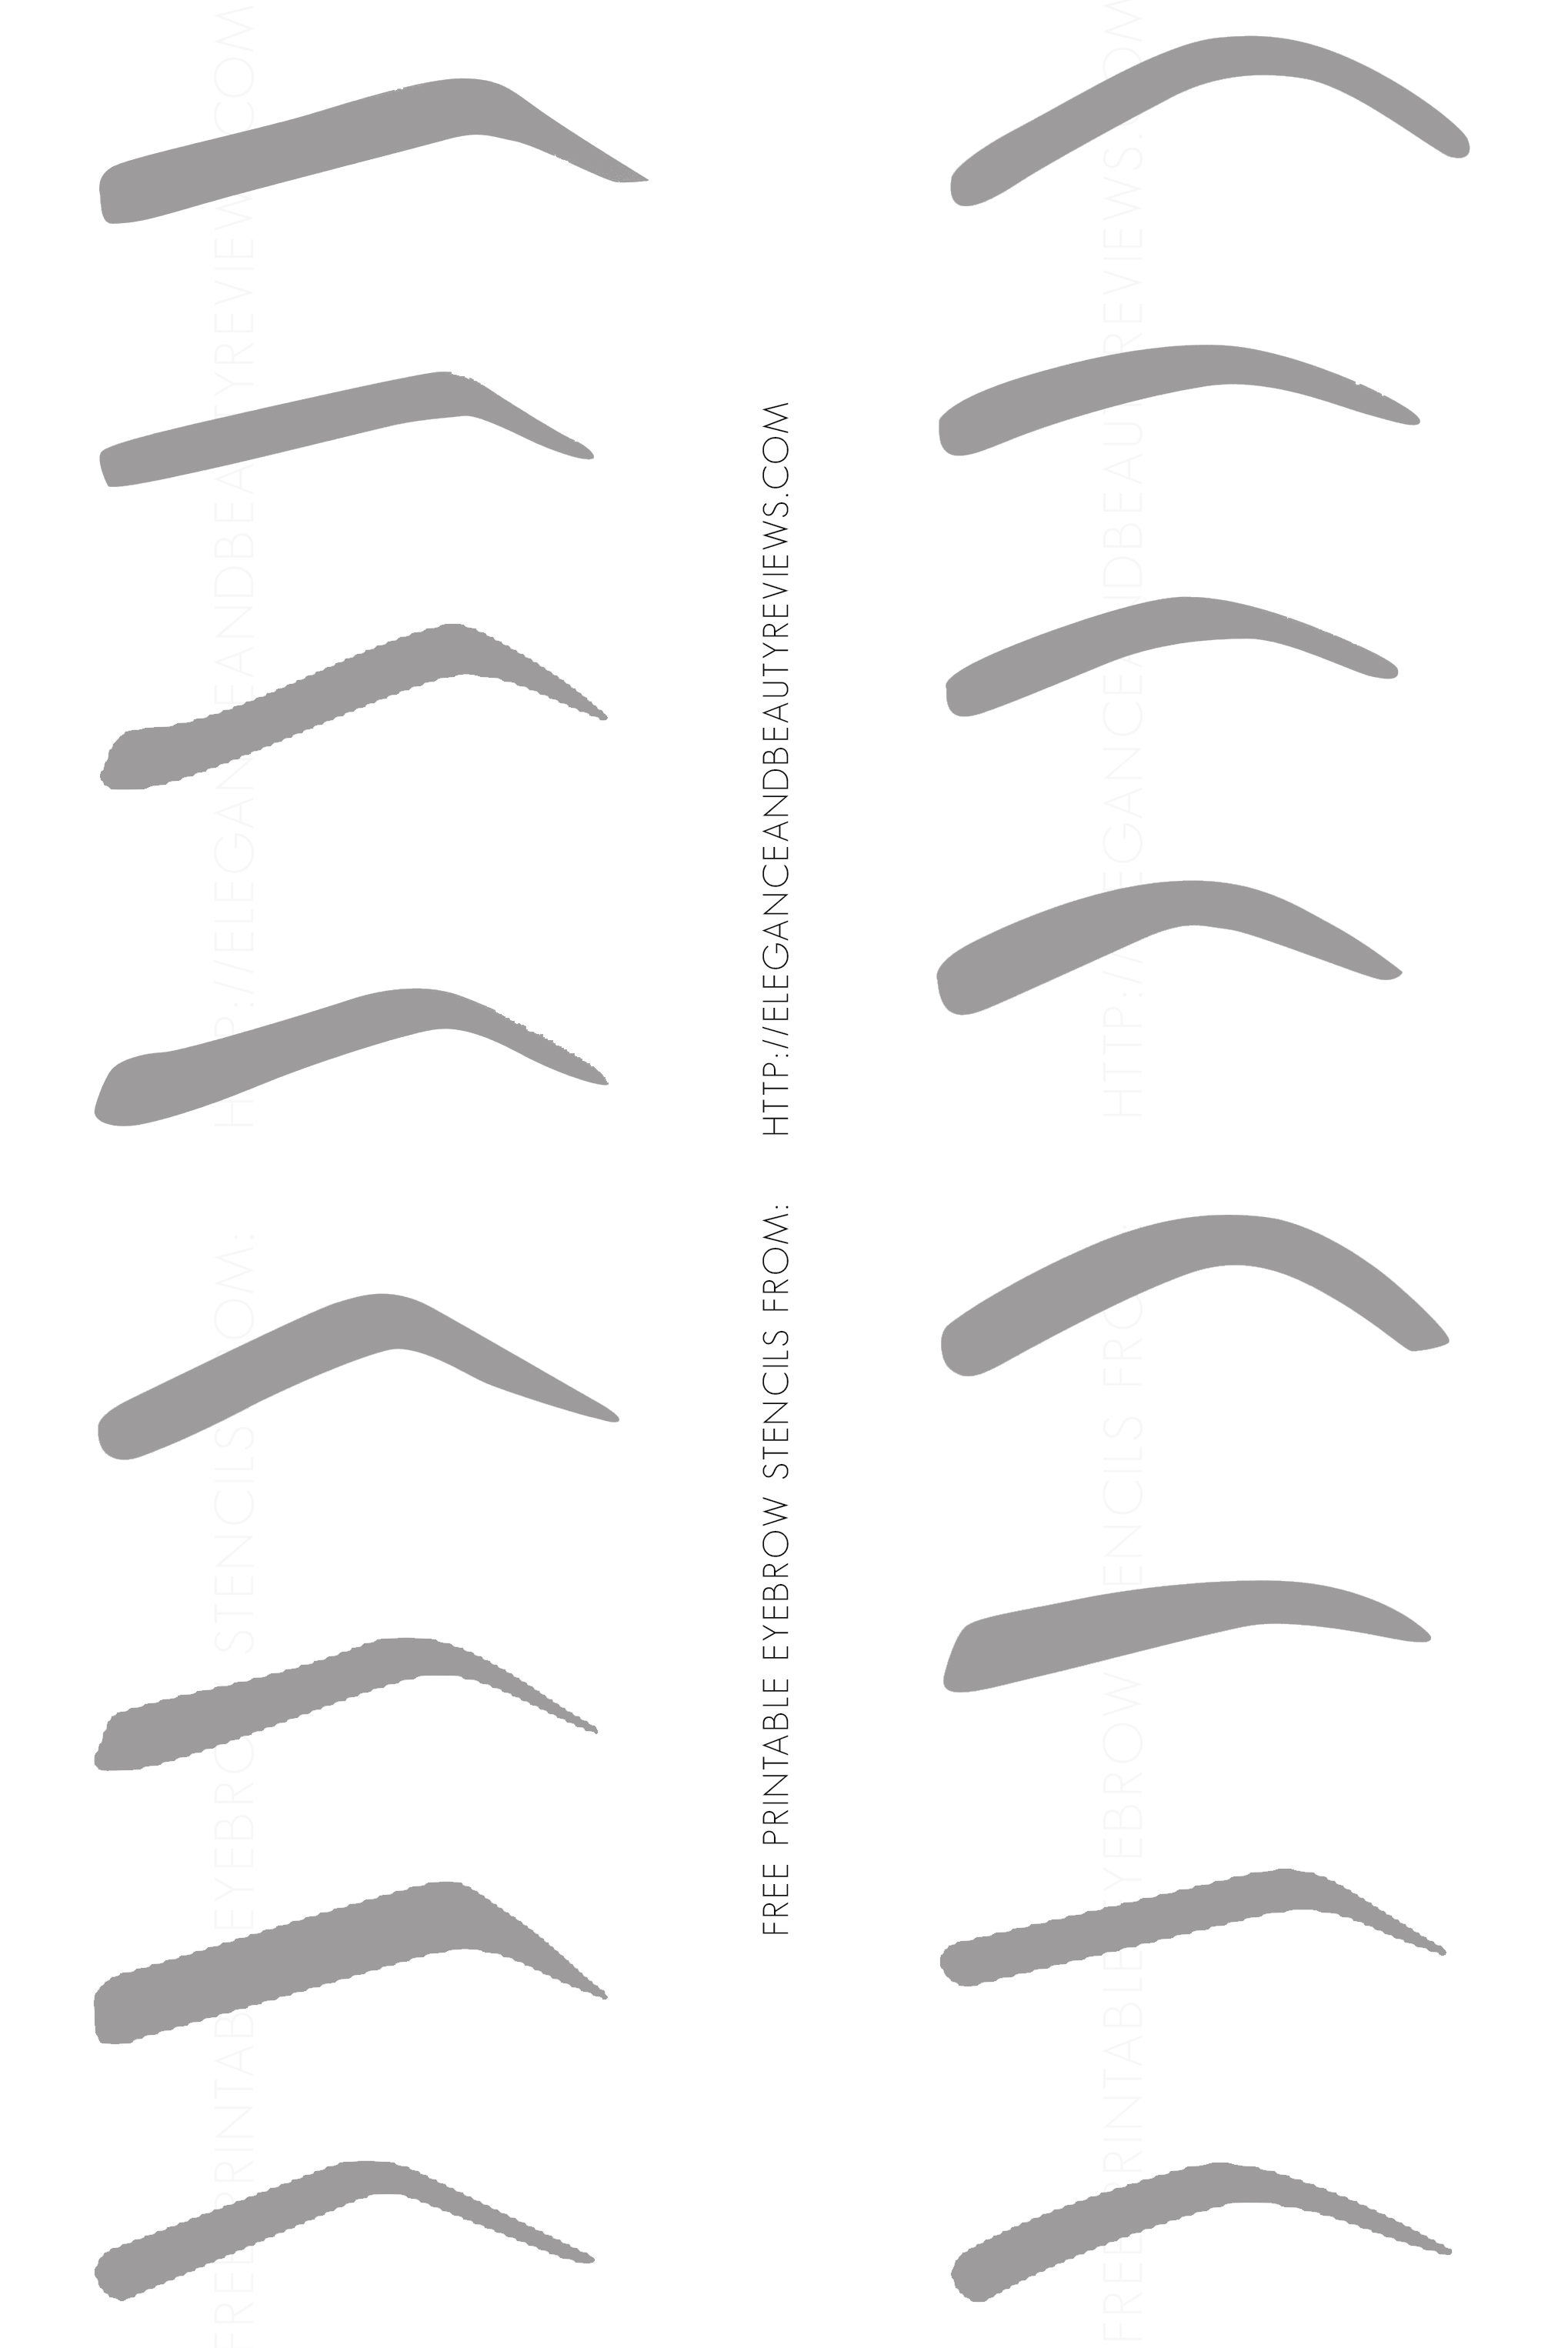 Simplicity image in eyebrow shapes stencils printable